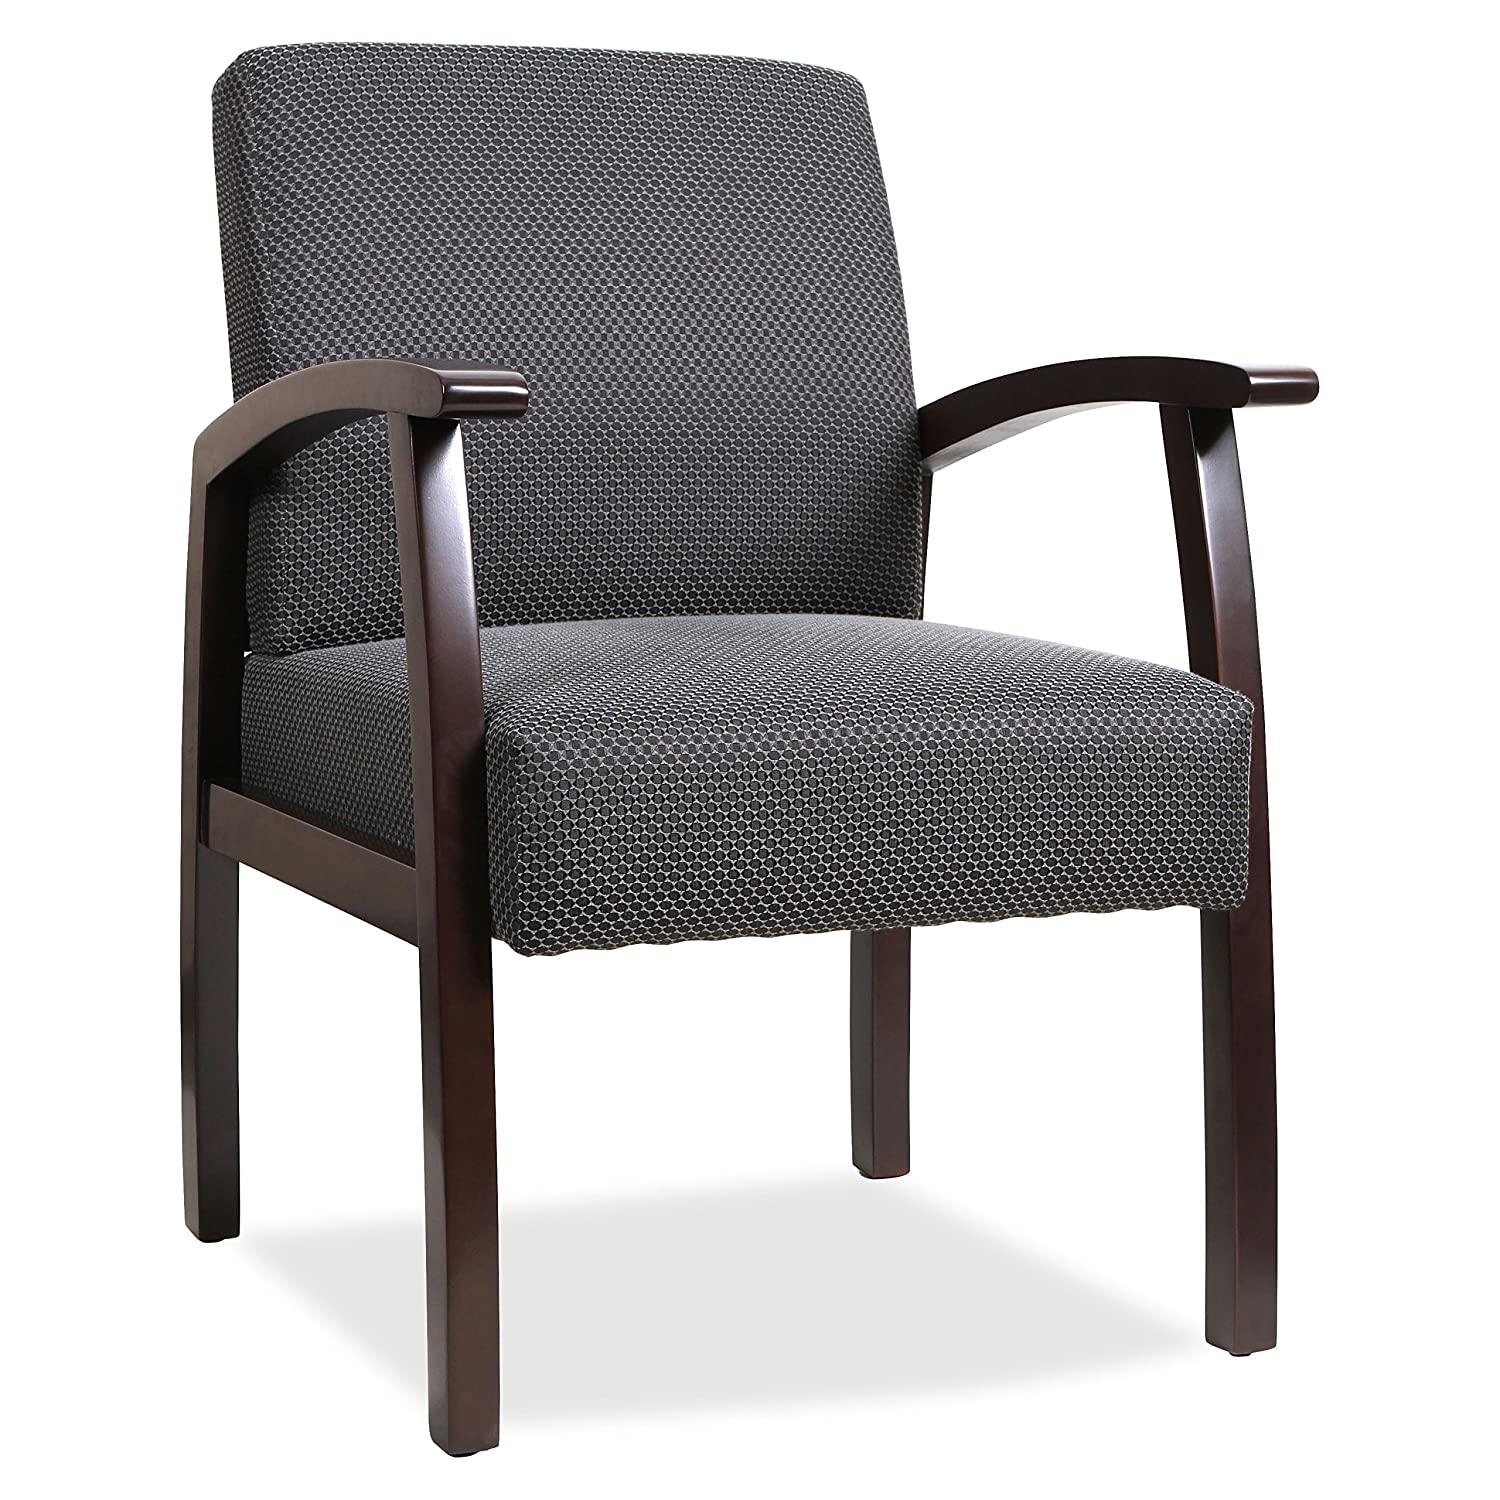 Lorell Guest Chairs, 24 by 25 by 35-1/2-Inch, Espresso/Charcoal S.P. Richards Company LLR68555